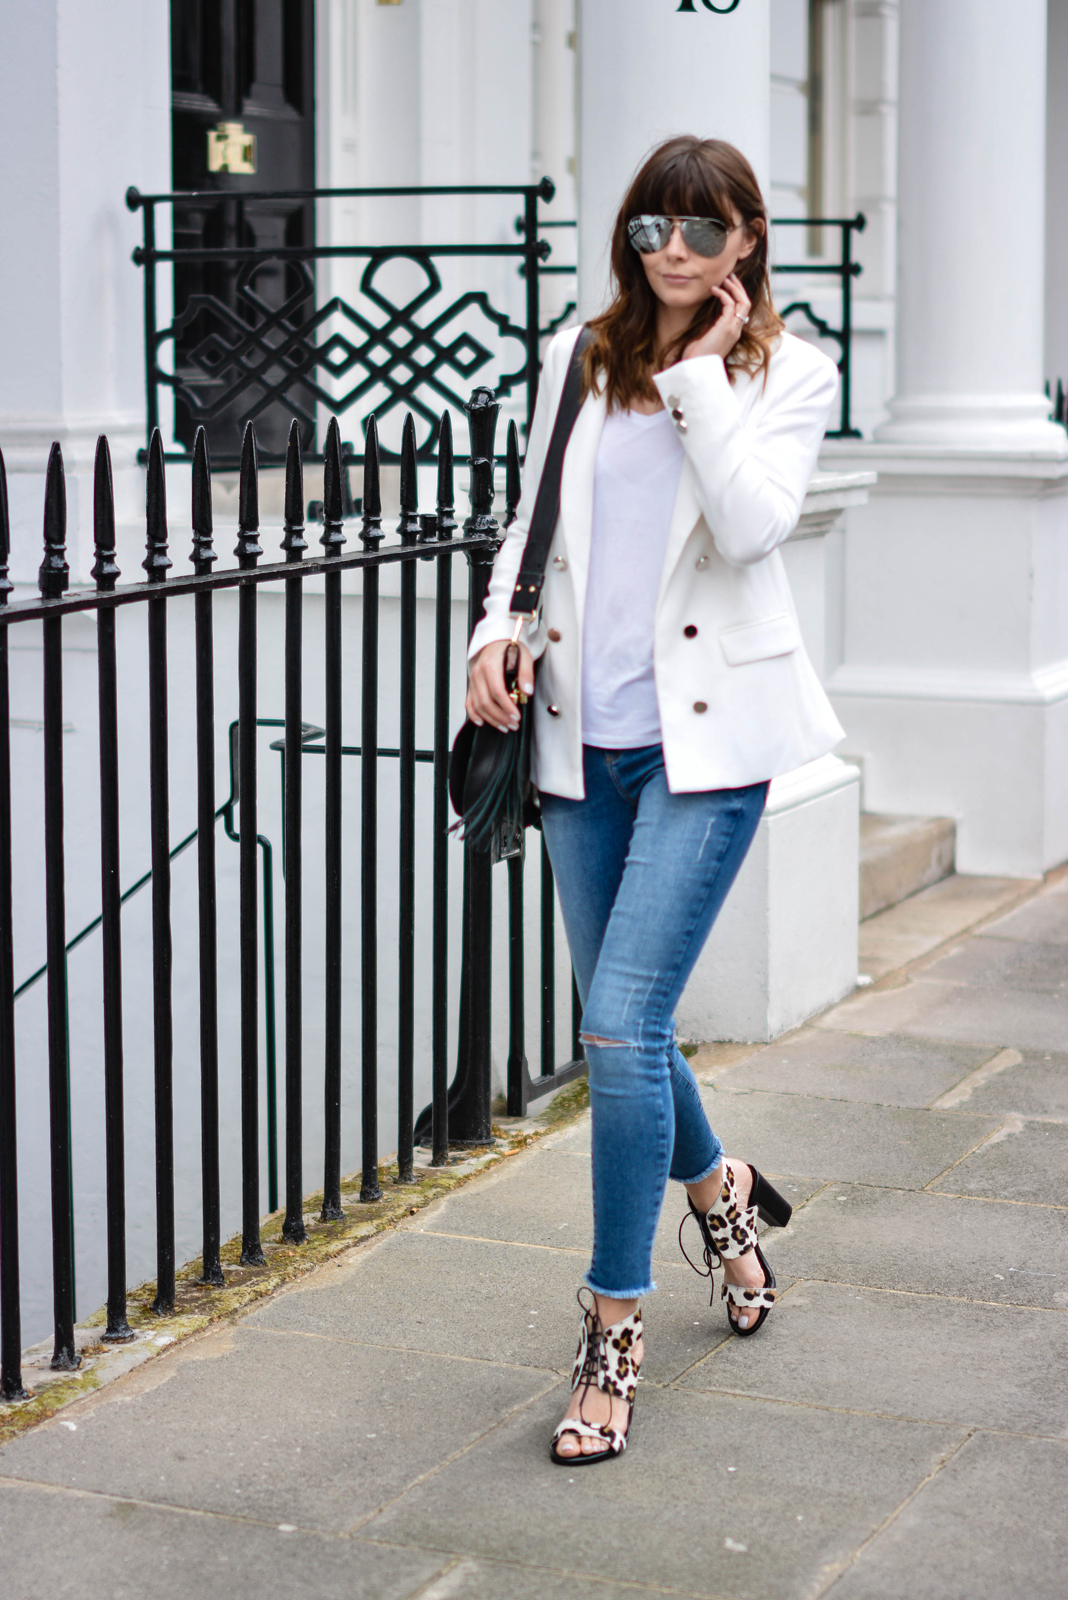 EJSTYLE - Emma Hill, Forever 21 white blazer, River Island ankle grazer skinny jeans, Sante shoes leopard lace up sandals, River Island Black saddle tassle bag, basic white t shirt, OOTD